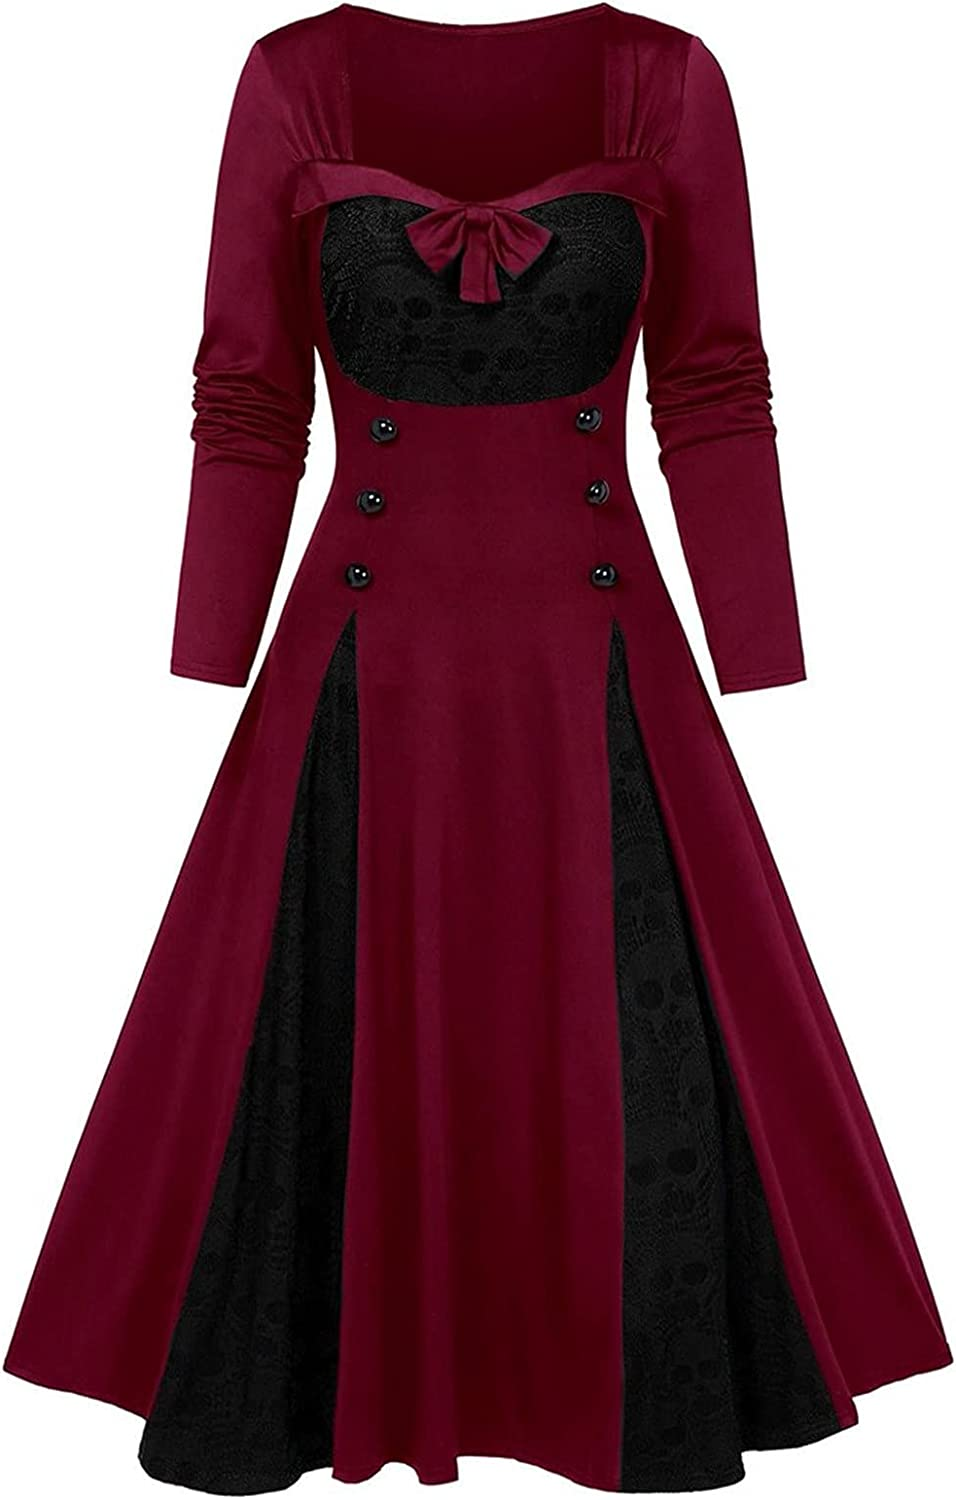 Womens Maxi Dress Fashion Gothic Vintage Plus-Size Formal Dress Halloween Long Sleeve Evening Party Dress